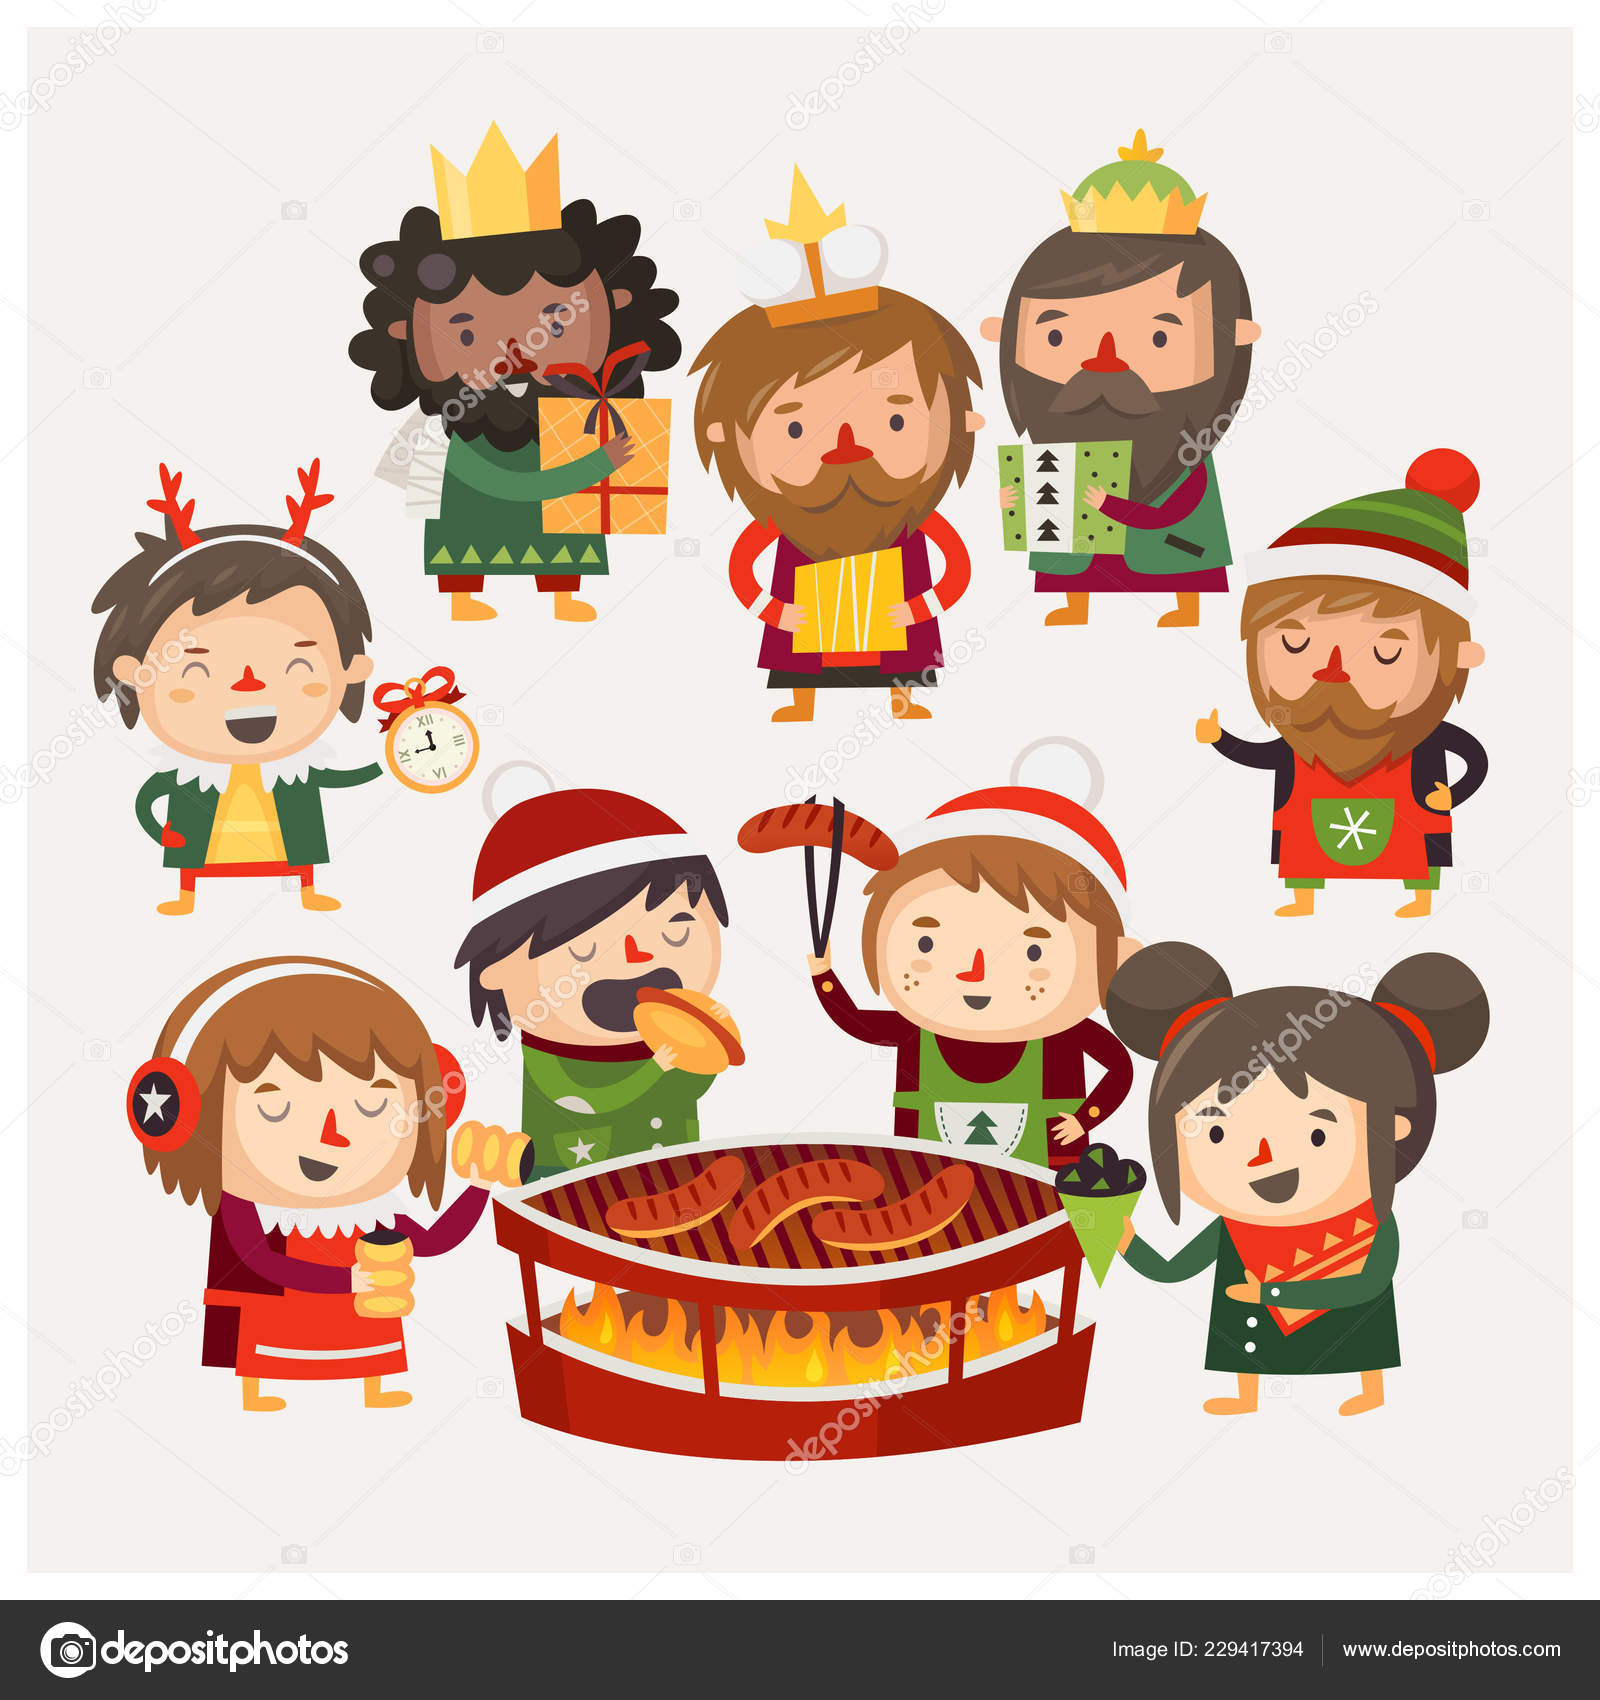 Christmas Festival Cartoon Images.Cartoon People Christmas Market Exchanging Gifts Eating